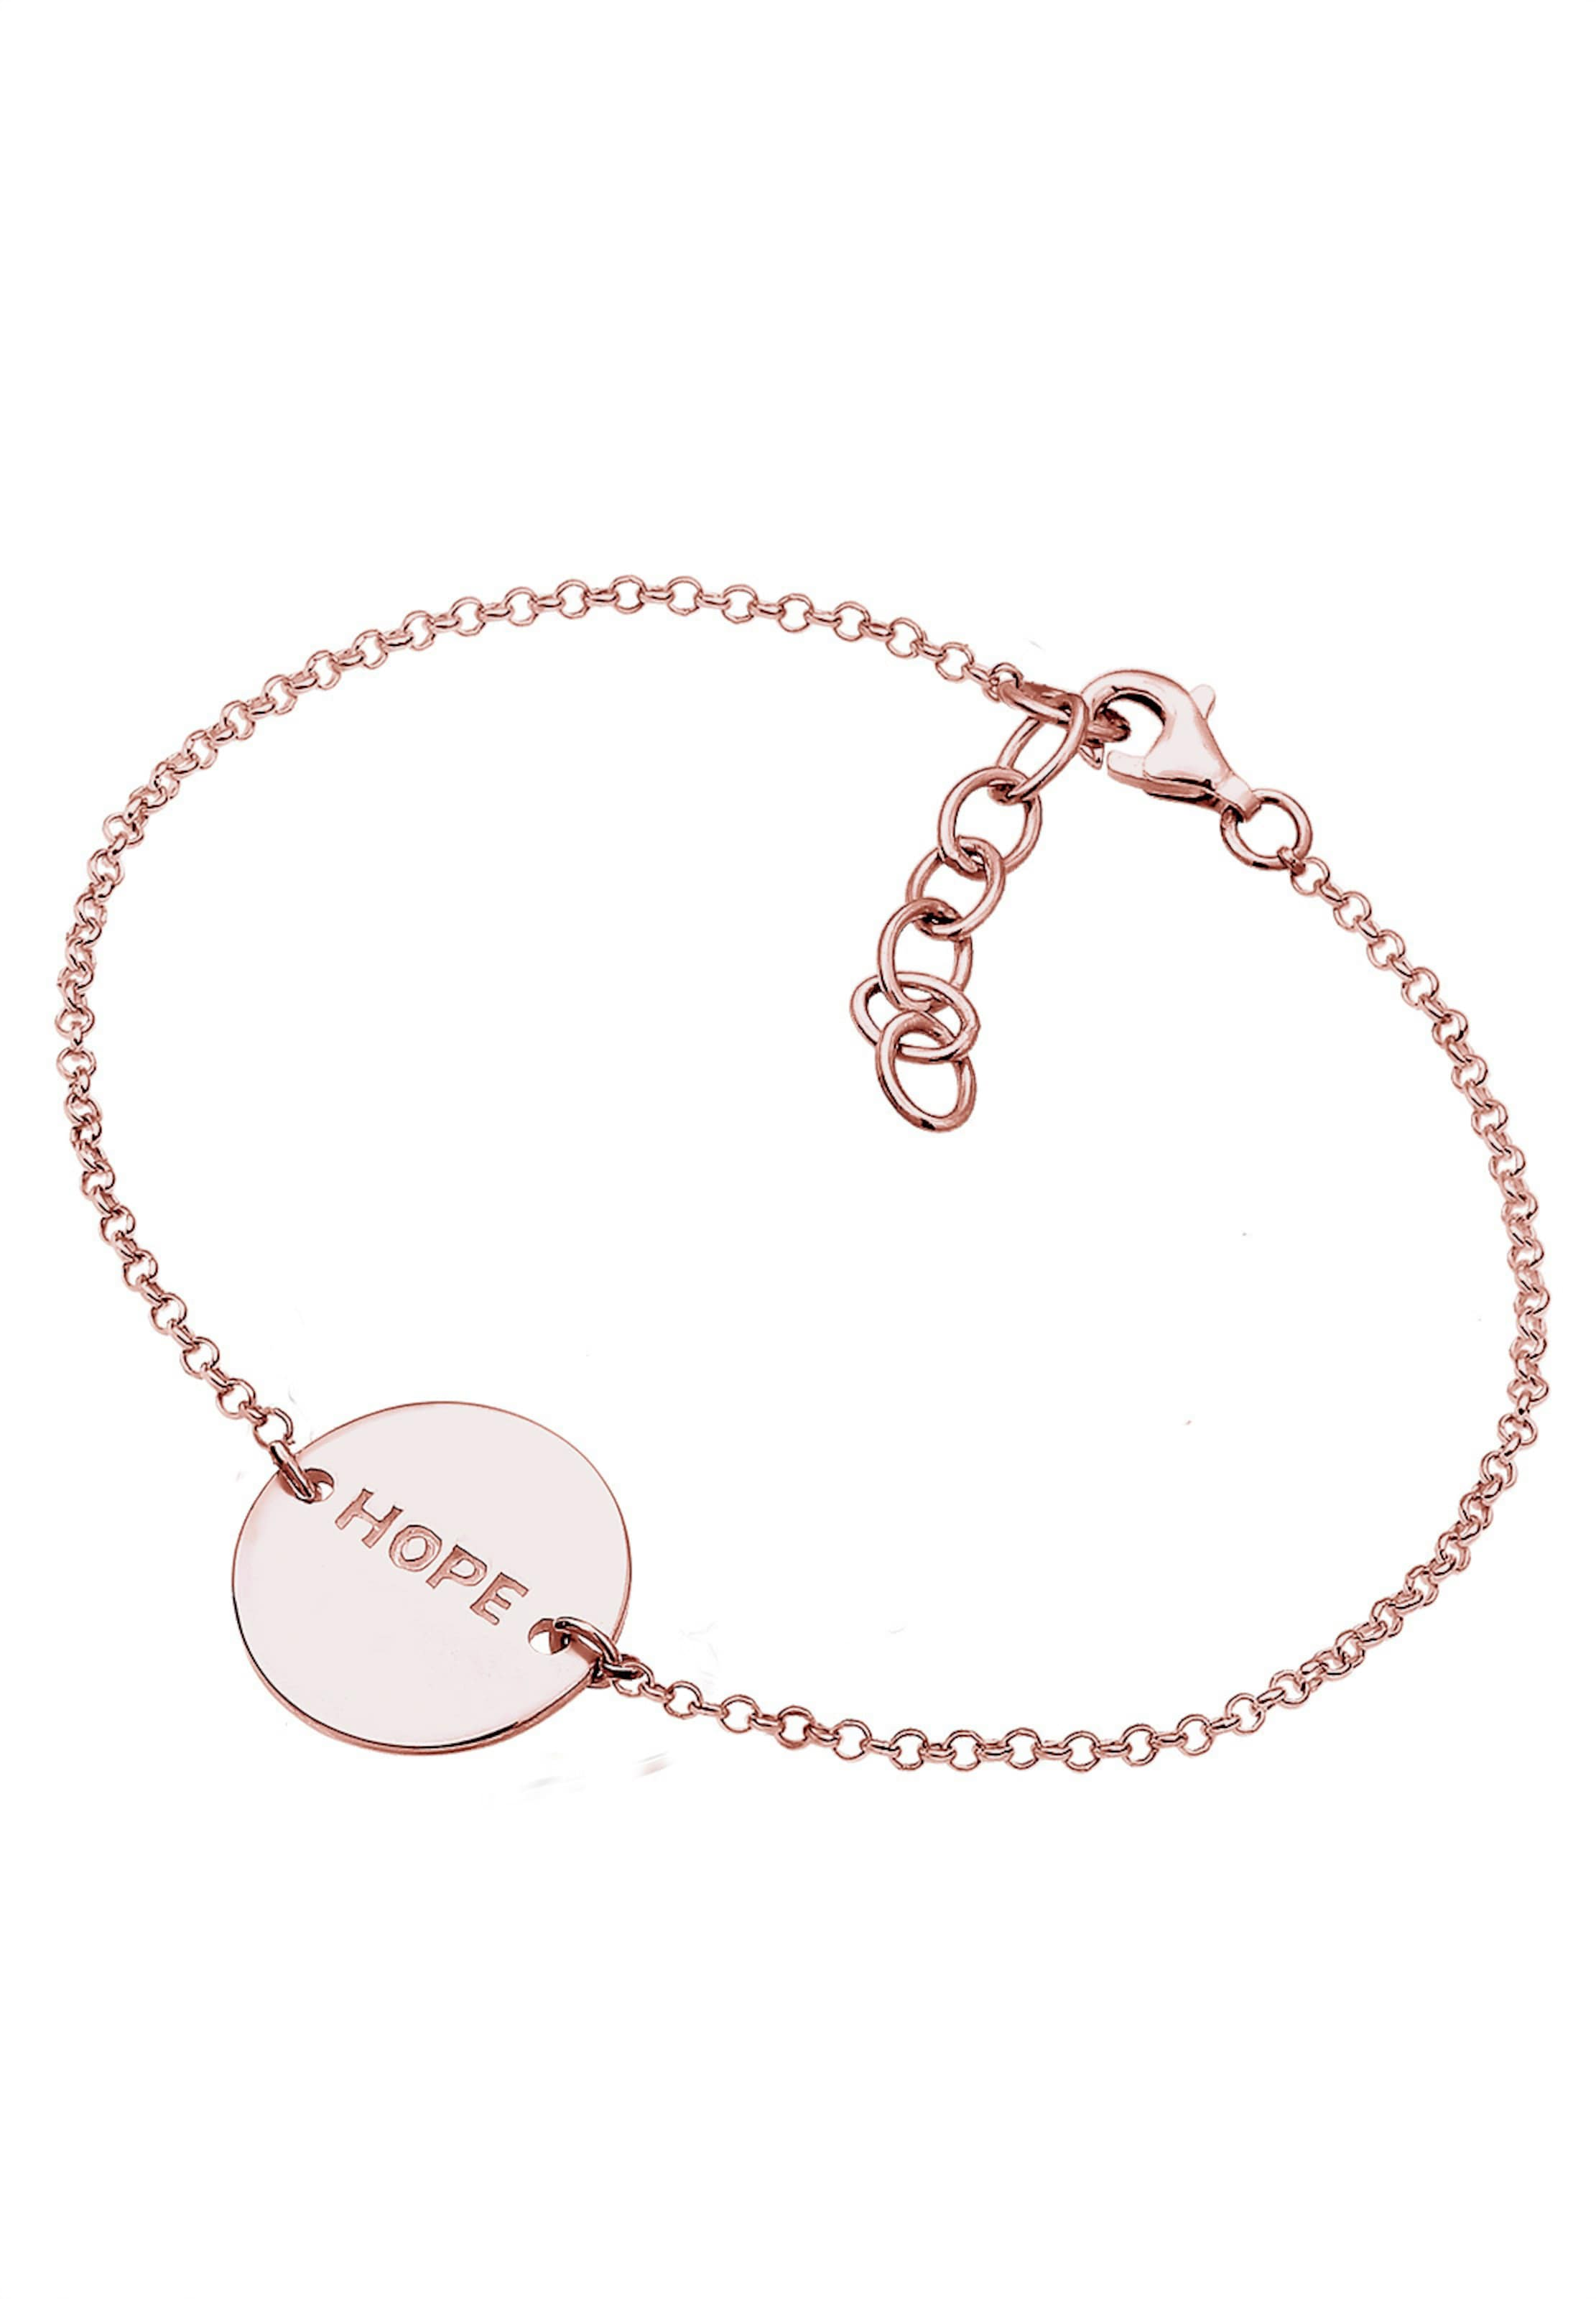 'hope' Rosegold Elli 'hope' Armband In Elli Armband lKTF1Jc3